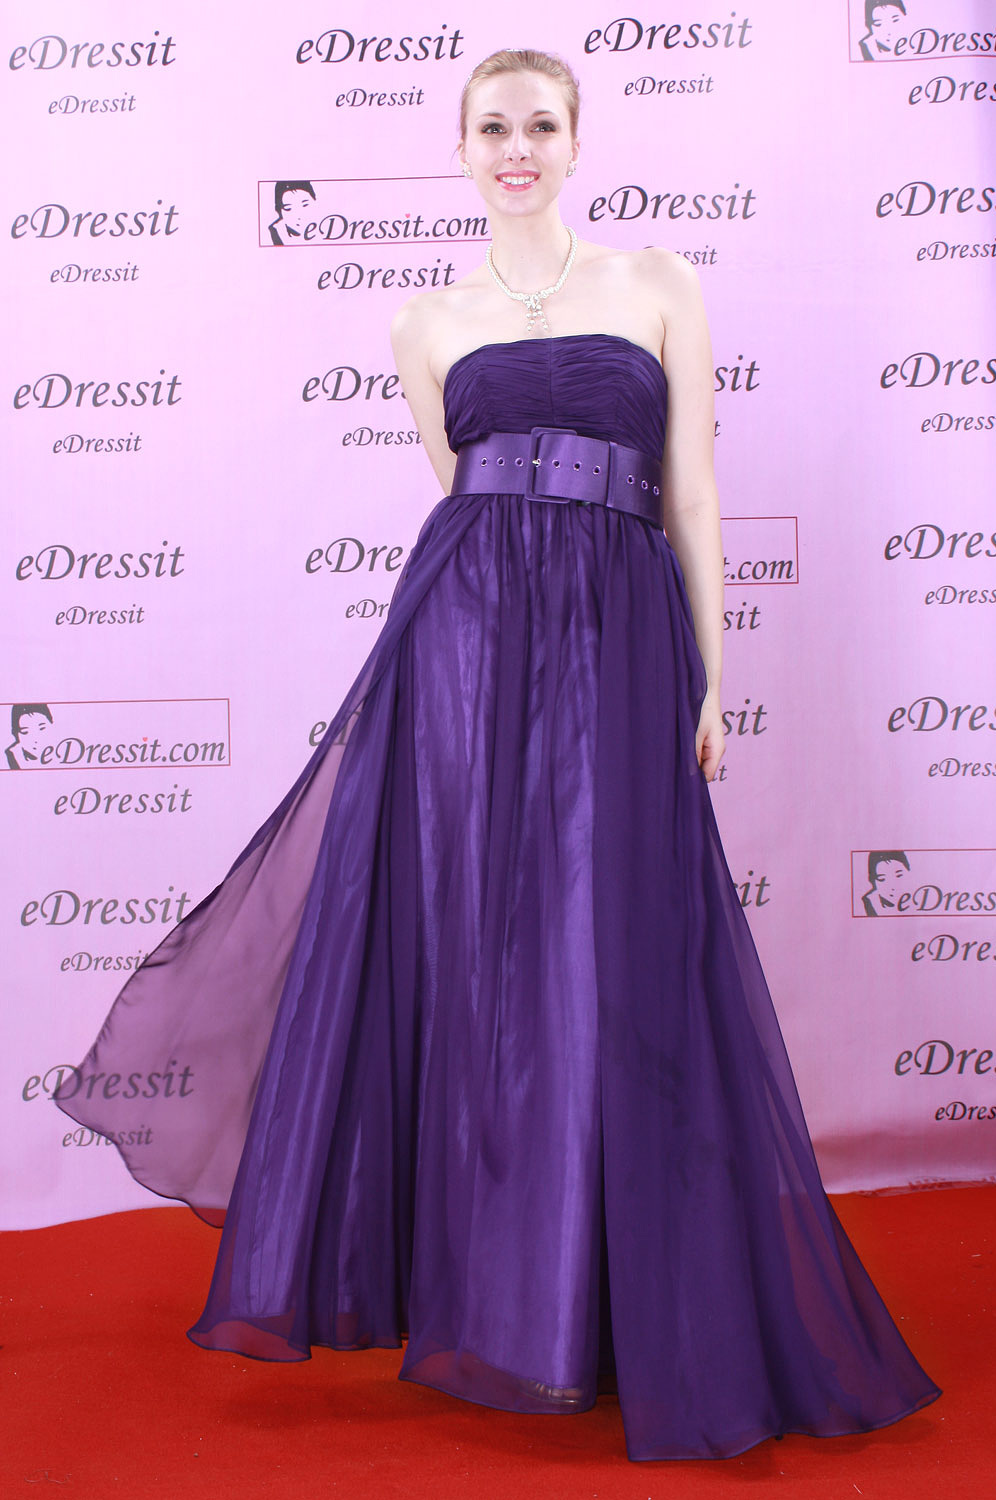 eDresssitSILK purple Prom/Ball/Gown/Evening dress (00080306a)